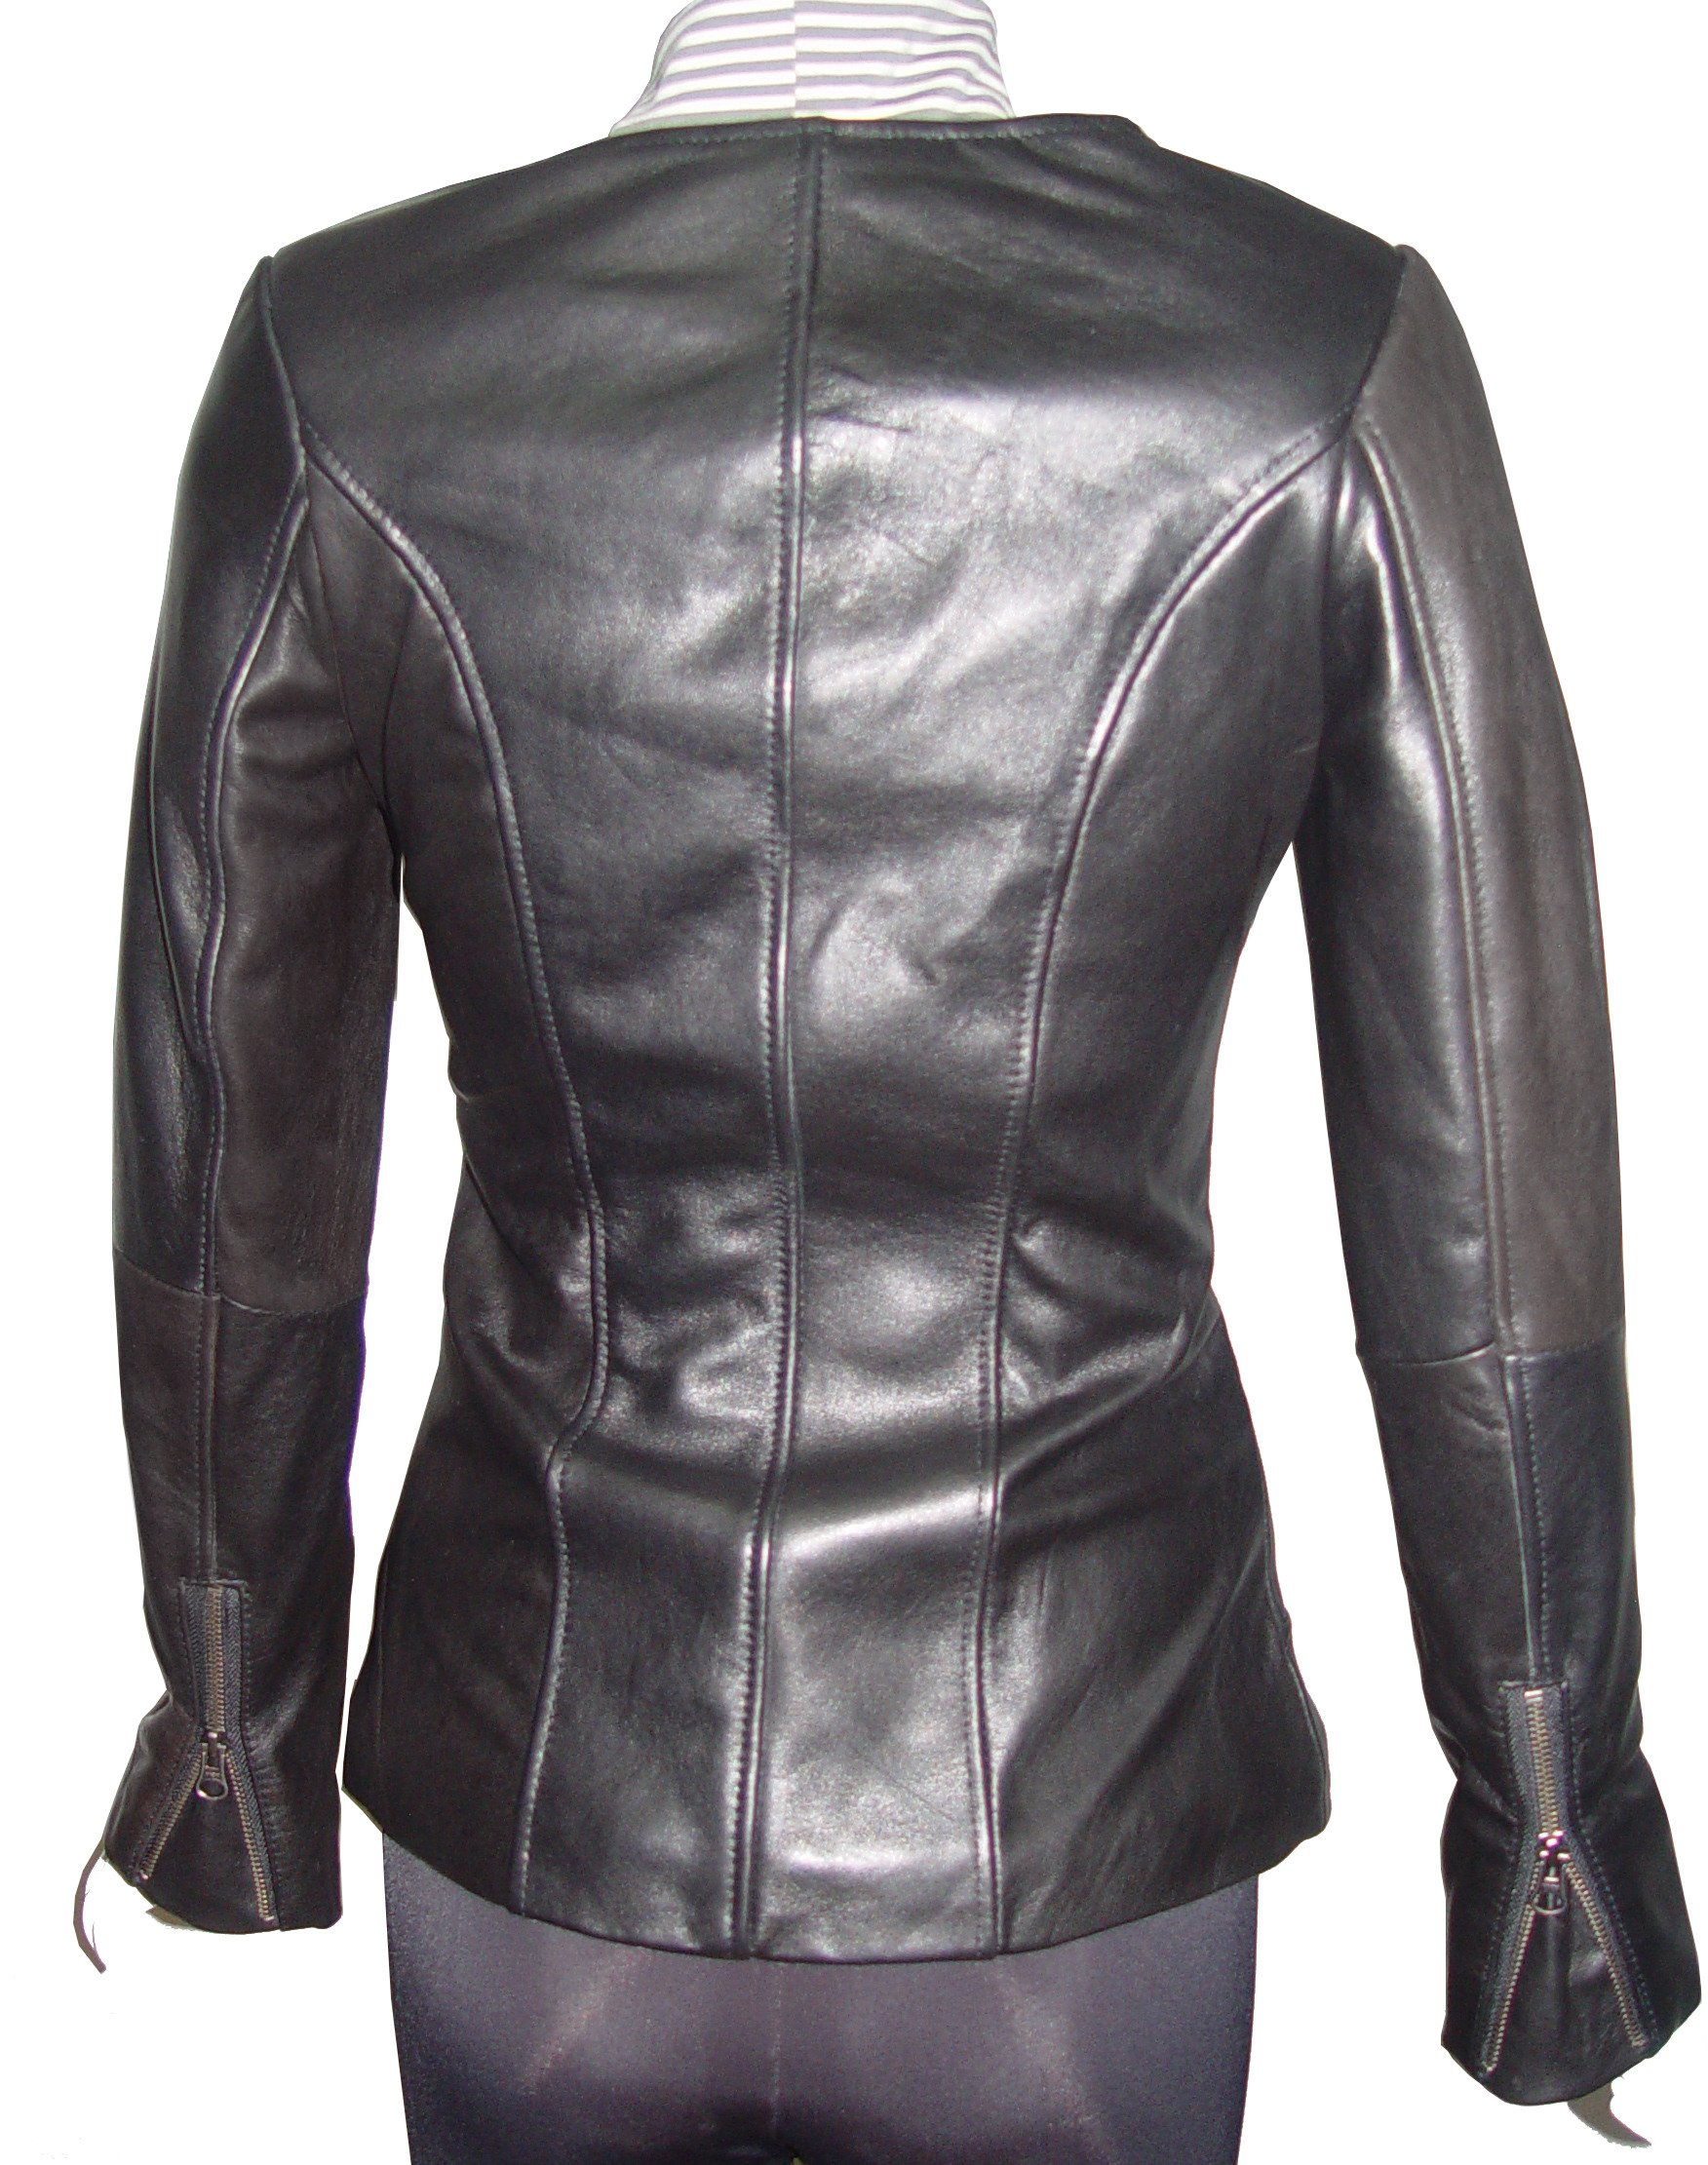 Nettailor Women PETITE & ALL SIZE Fashion 4128 Leather Motorcycle Jacket by Paccilo (Image #3)